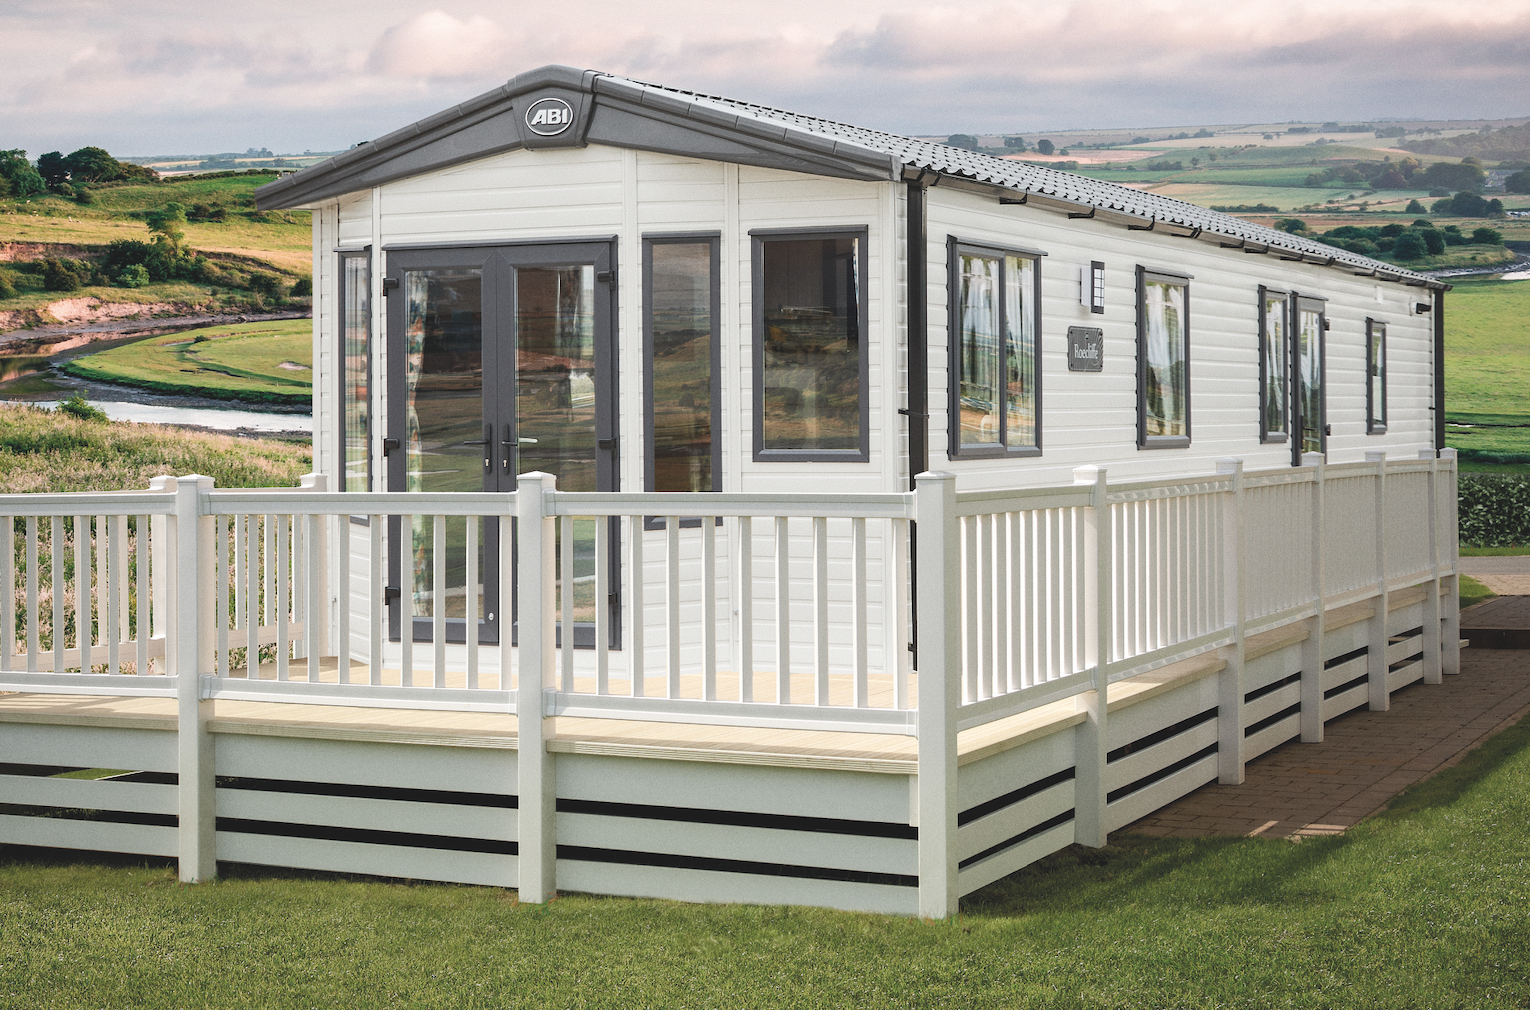 Woodthorpe Leisure Park Caravans For Sale